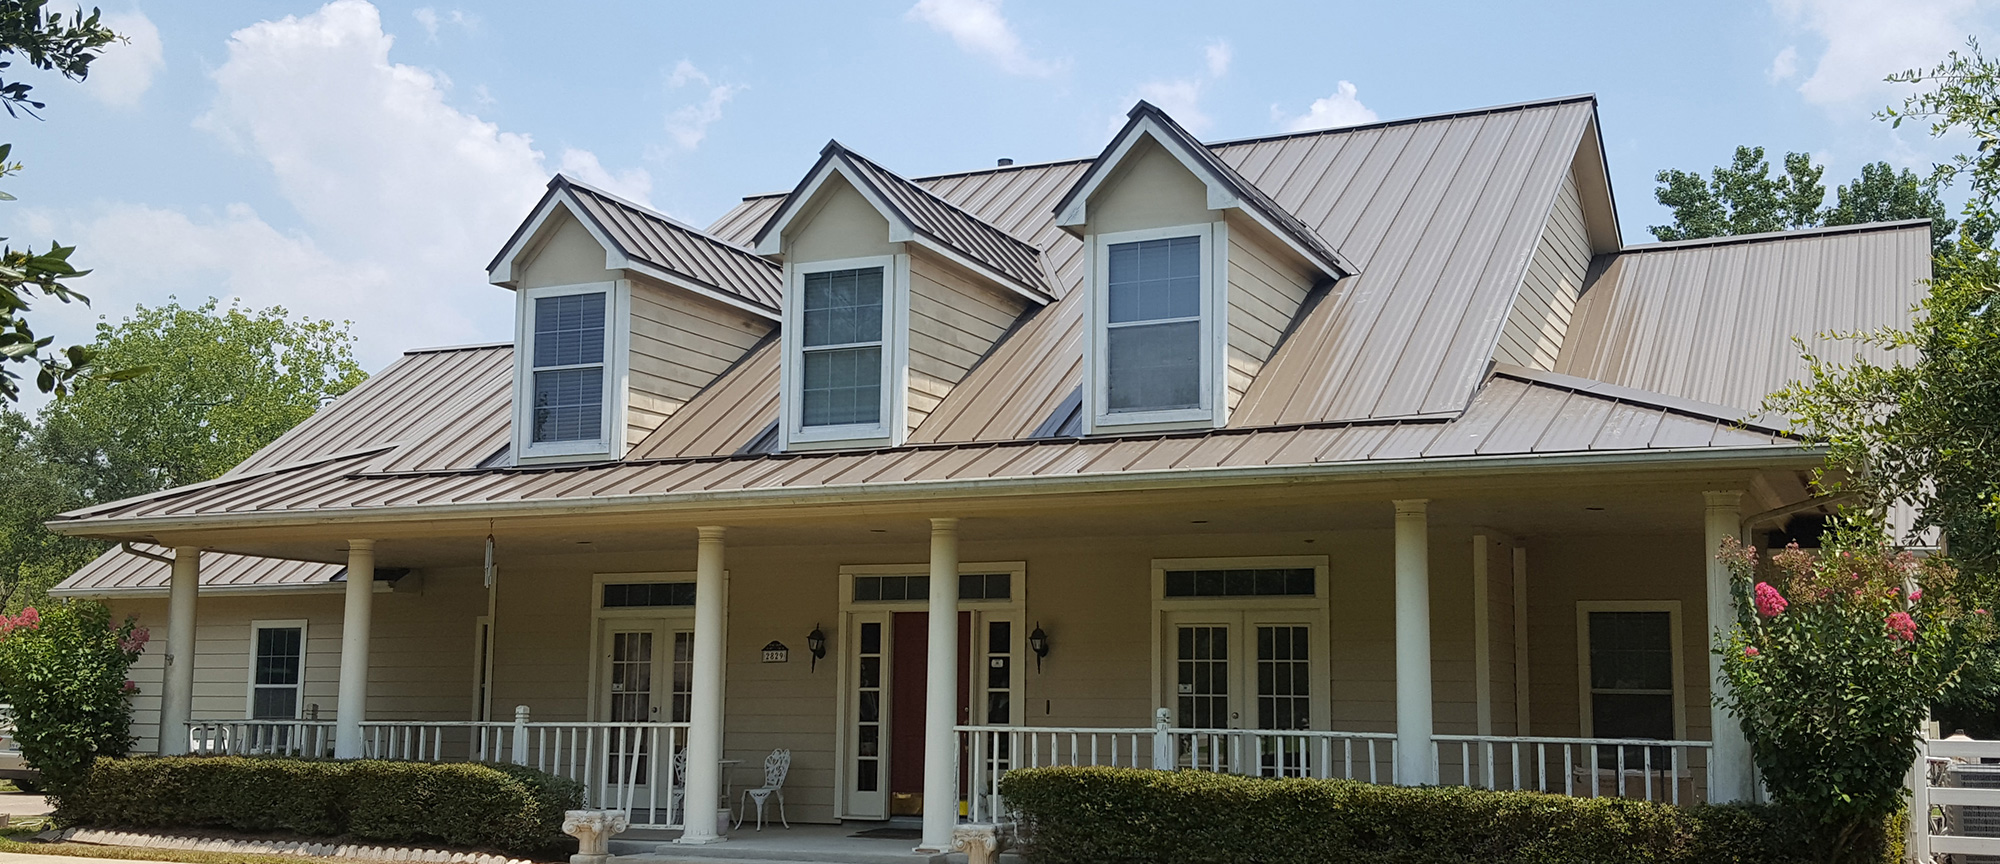 Alliance Roofing Company Residential And Commercial Roof Installation And Repair Houston Texas Home